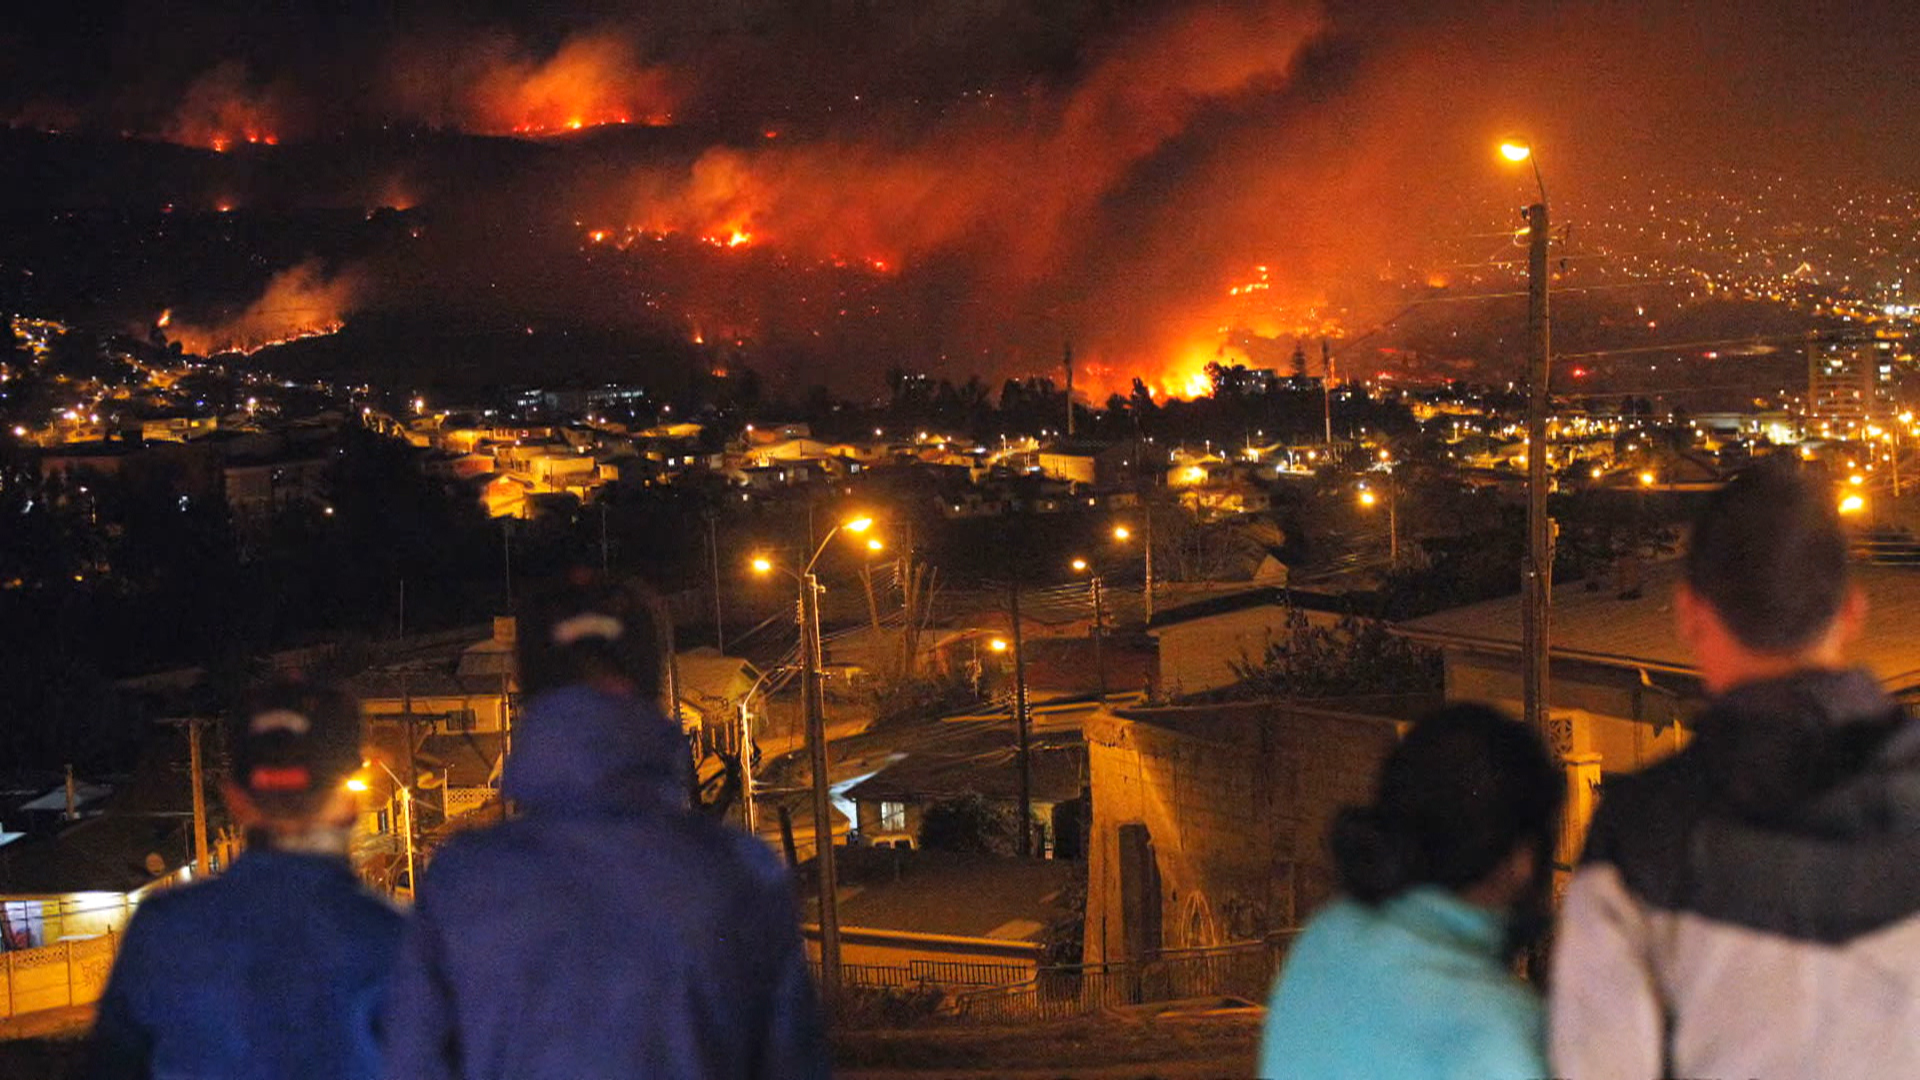 Chile Fire Toll: 12 Dead; 2,000 Homes Destroyed